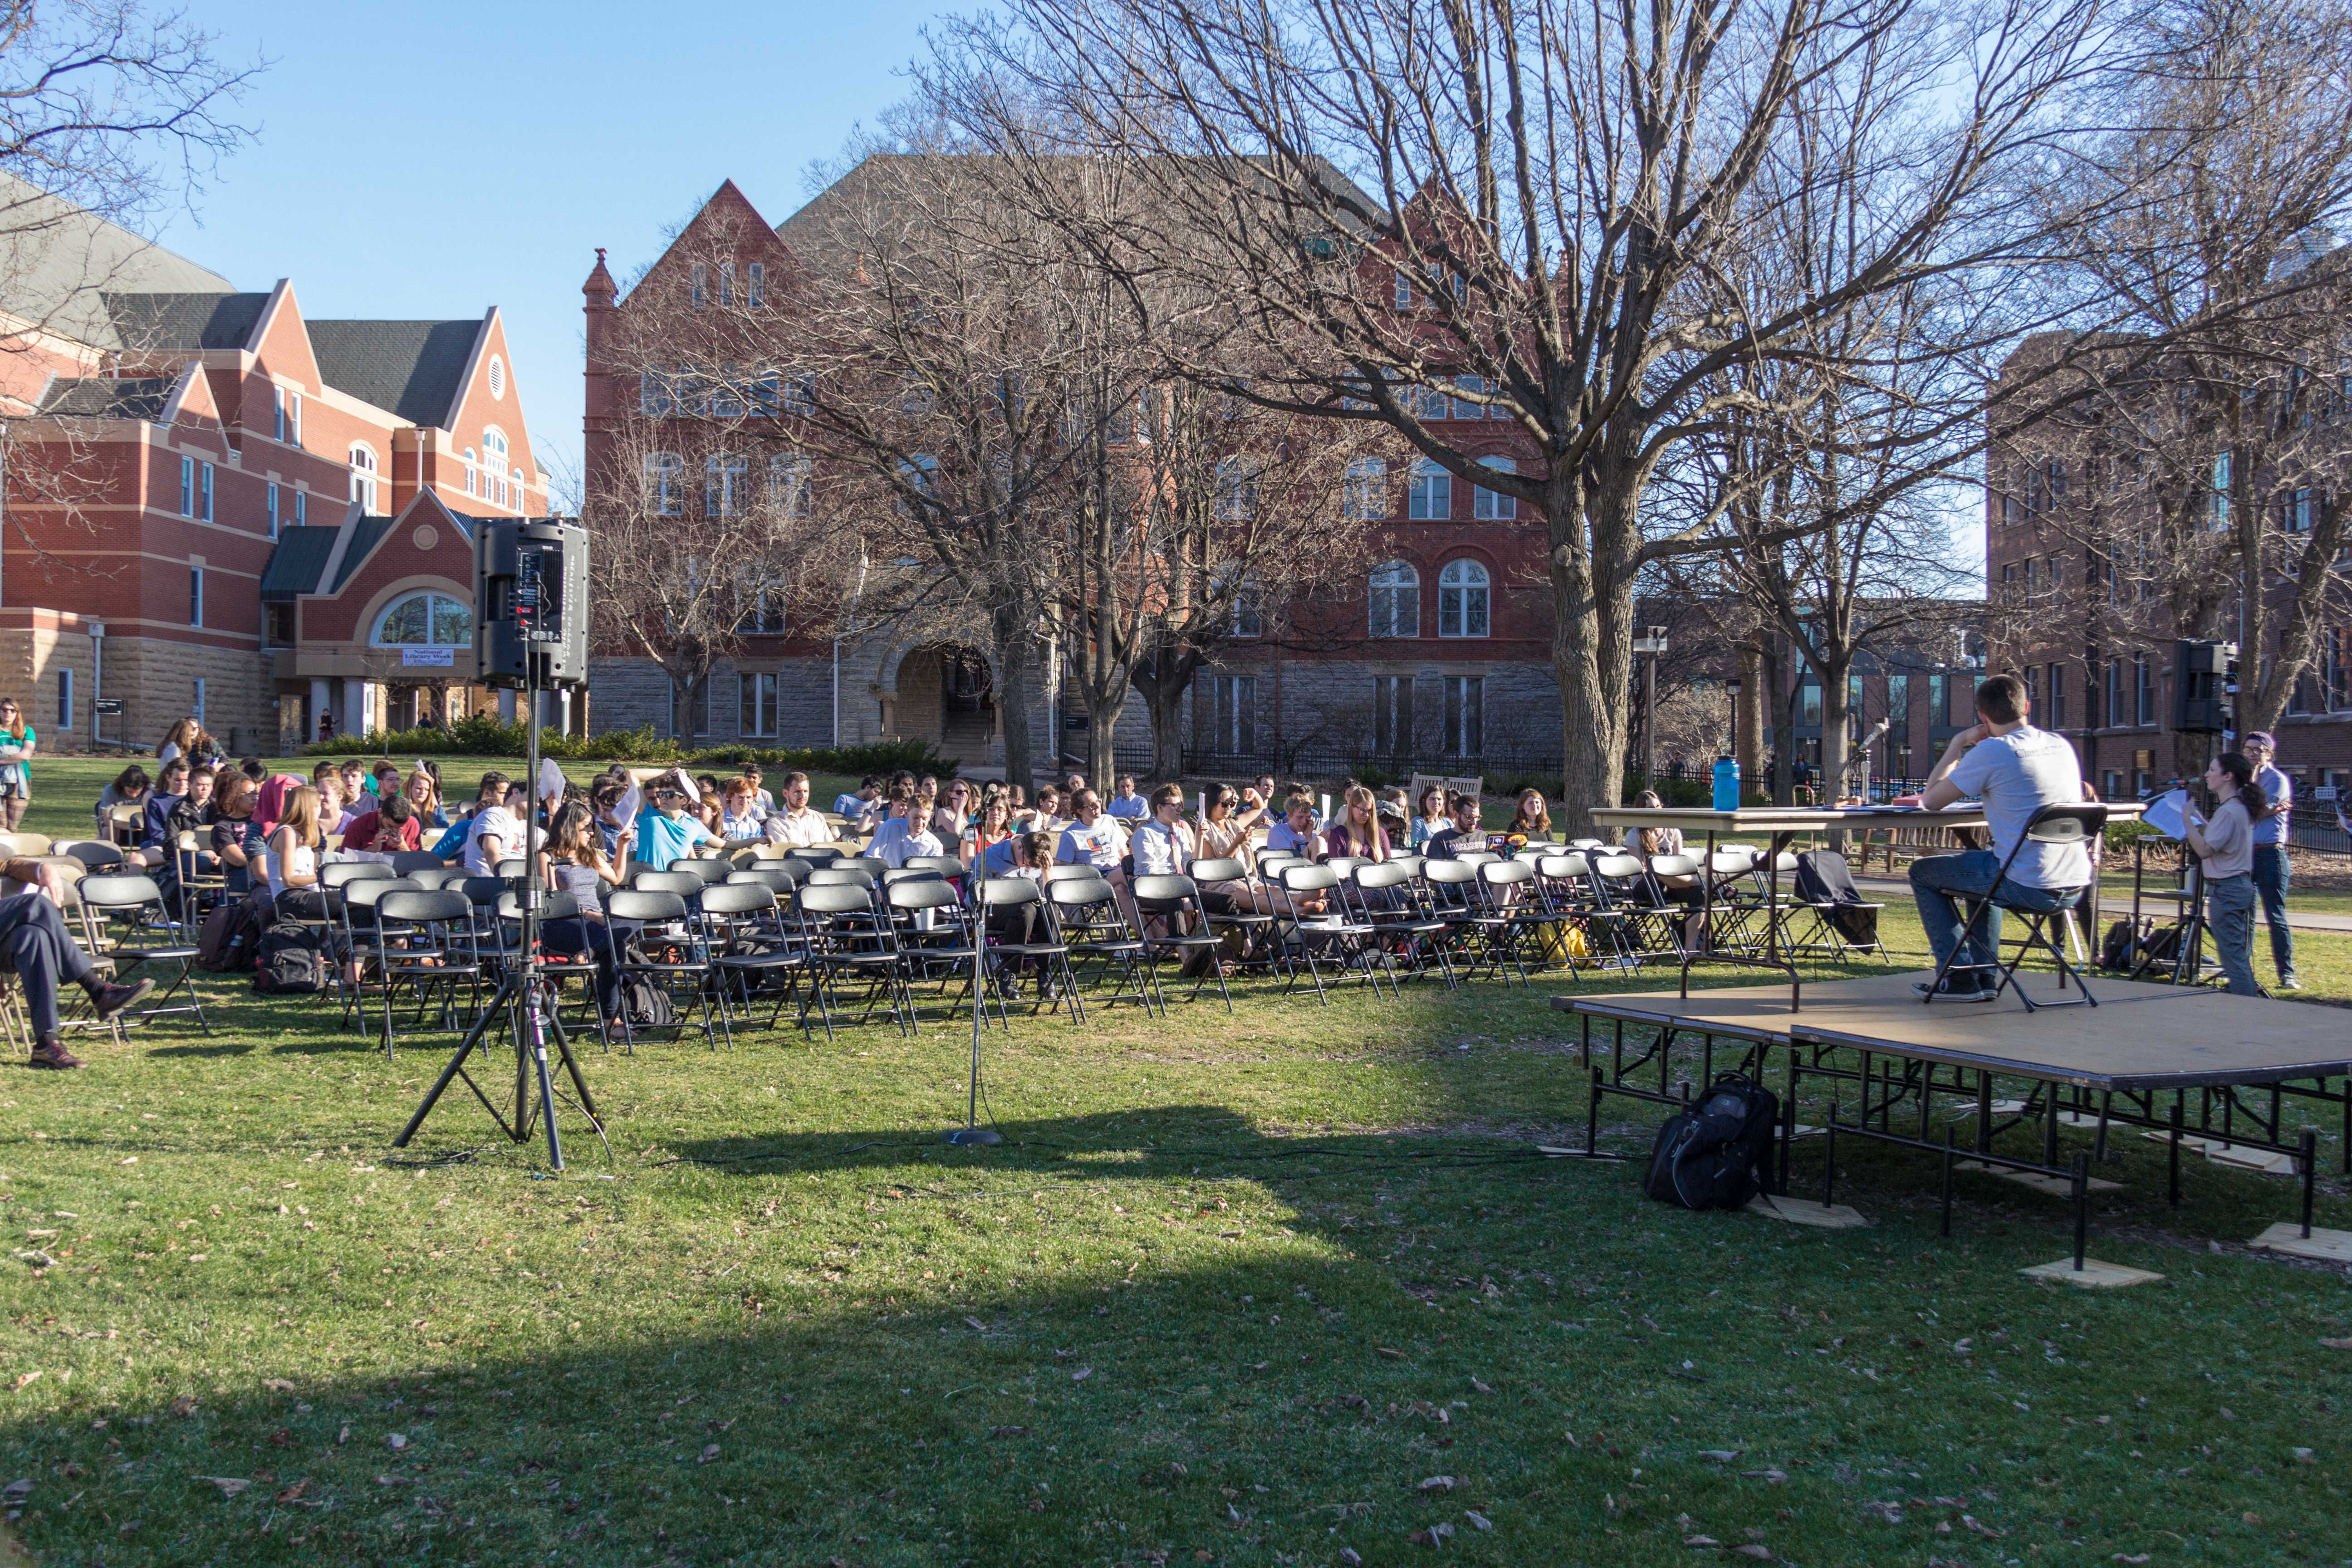 Students gathered on Old Main Lawn on Tuesday evening to debate a resolution on income inequality at Mac. Photo by Josh Koh '18.